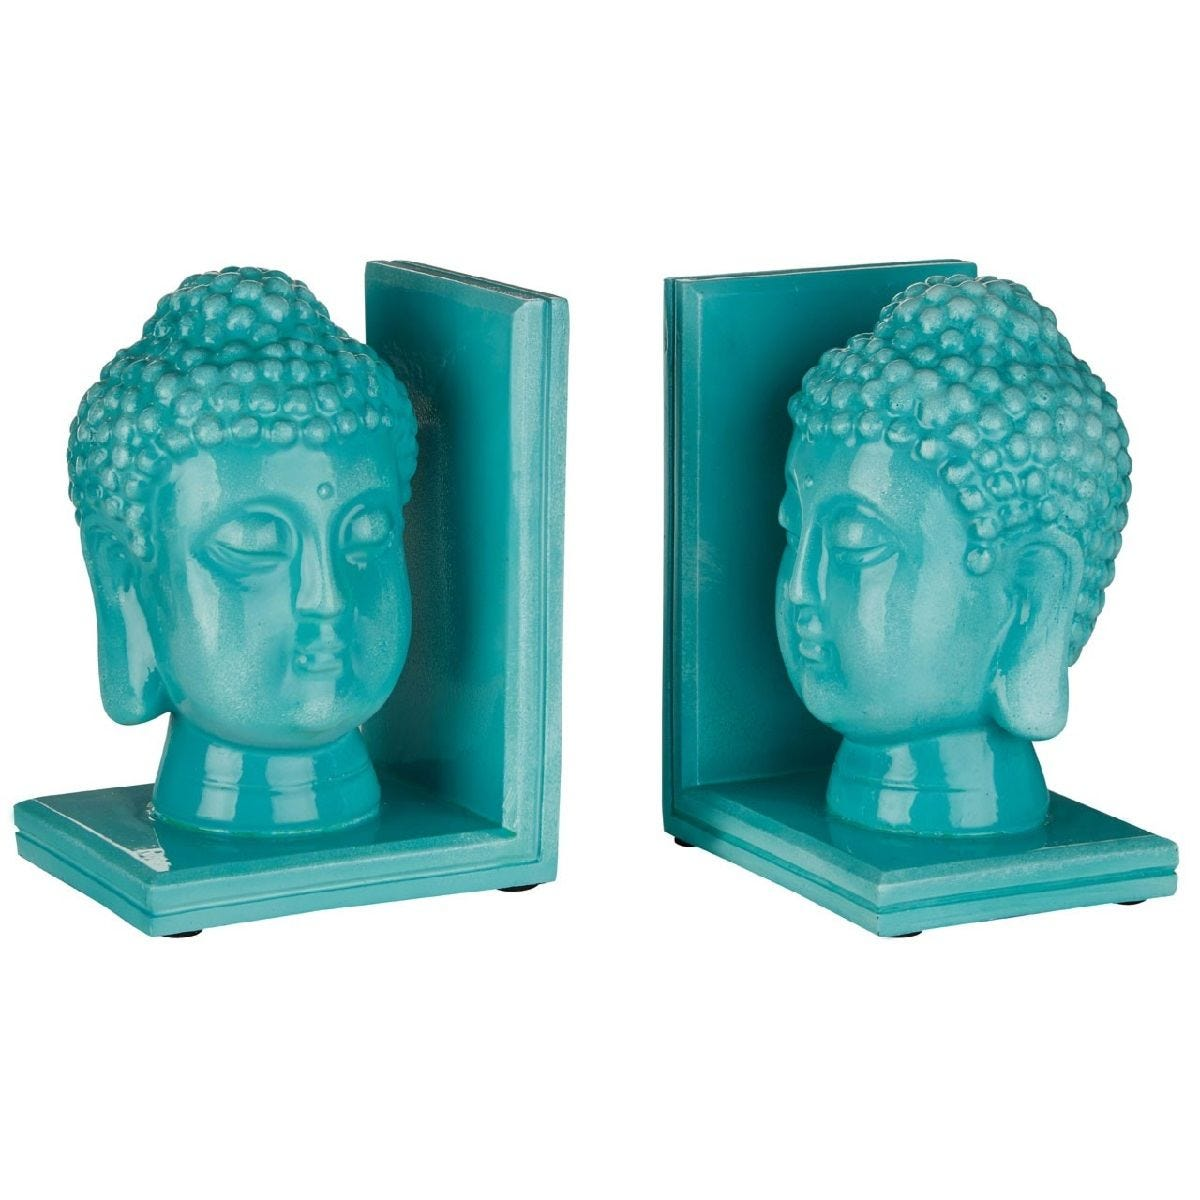 Premier Housewares Buddha Head Set of 2 Bookends - Polyresin Turquoise